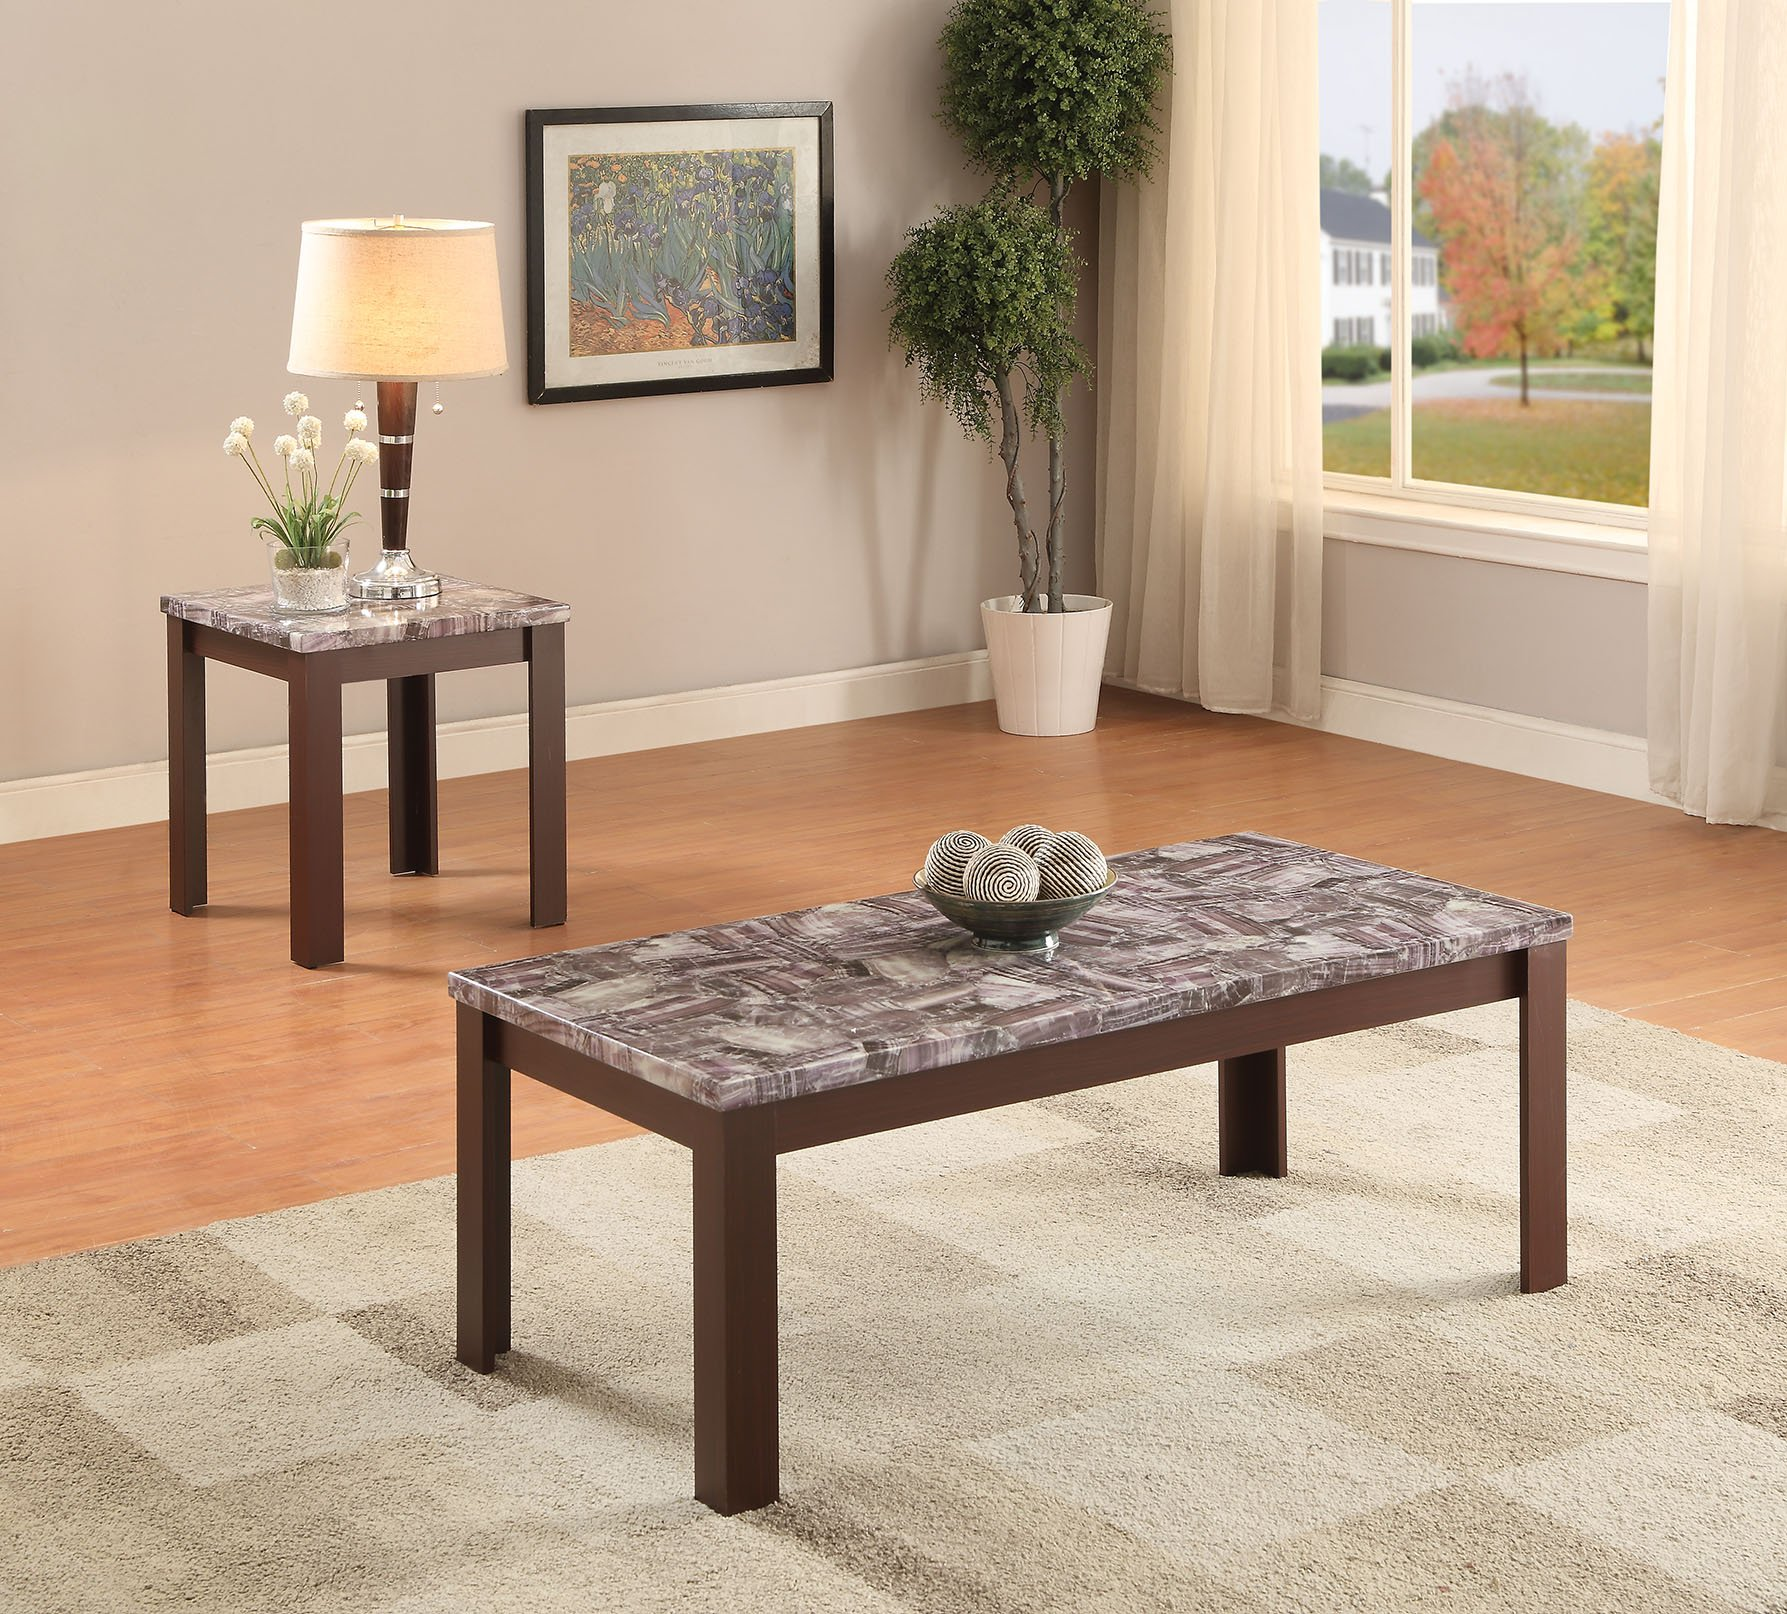 ACME Furniture 82136 2 Piece Arabia Coffee/End Table Set, Faux Marble & Cherry